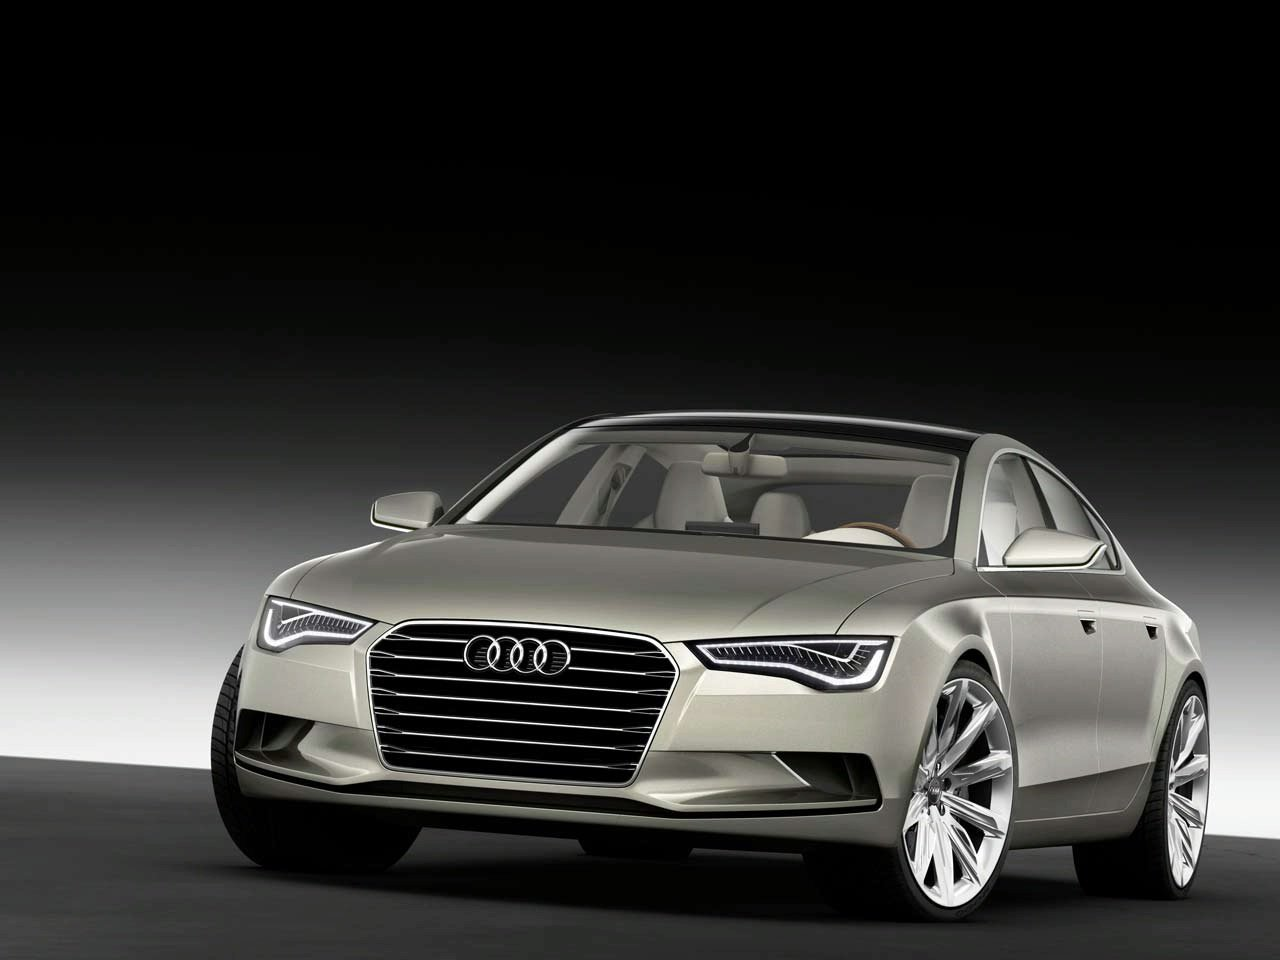 Latest 2013 Audi A7 Cars Free Download